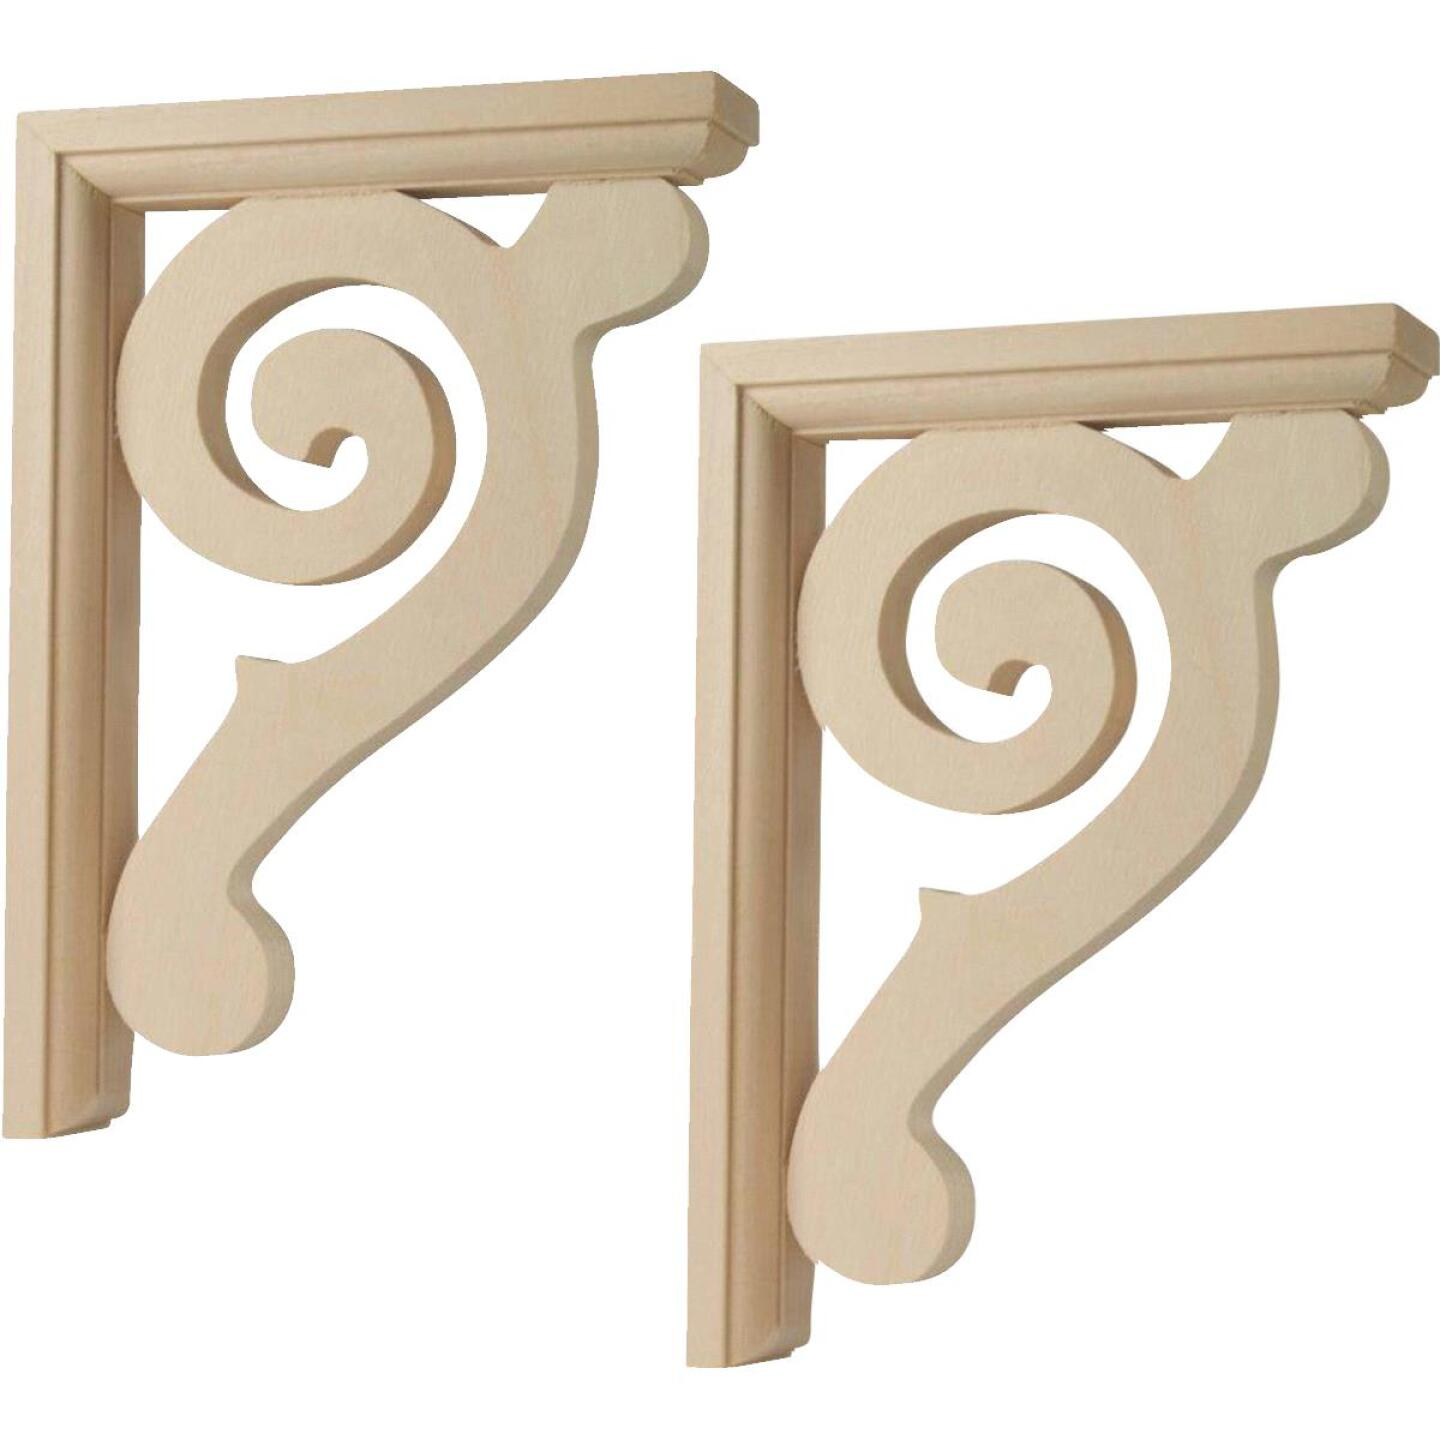 Waddell Crescent Corbel (2 Count) Image 1